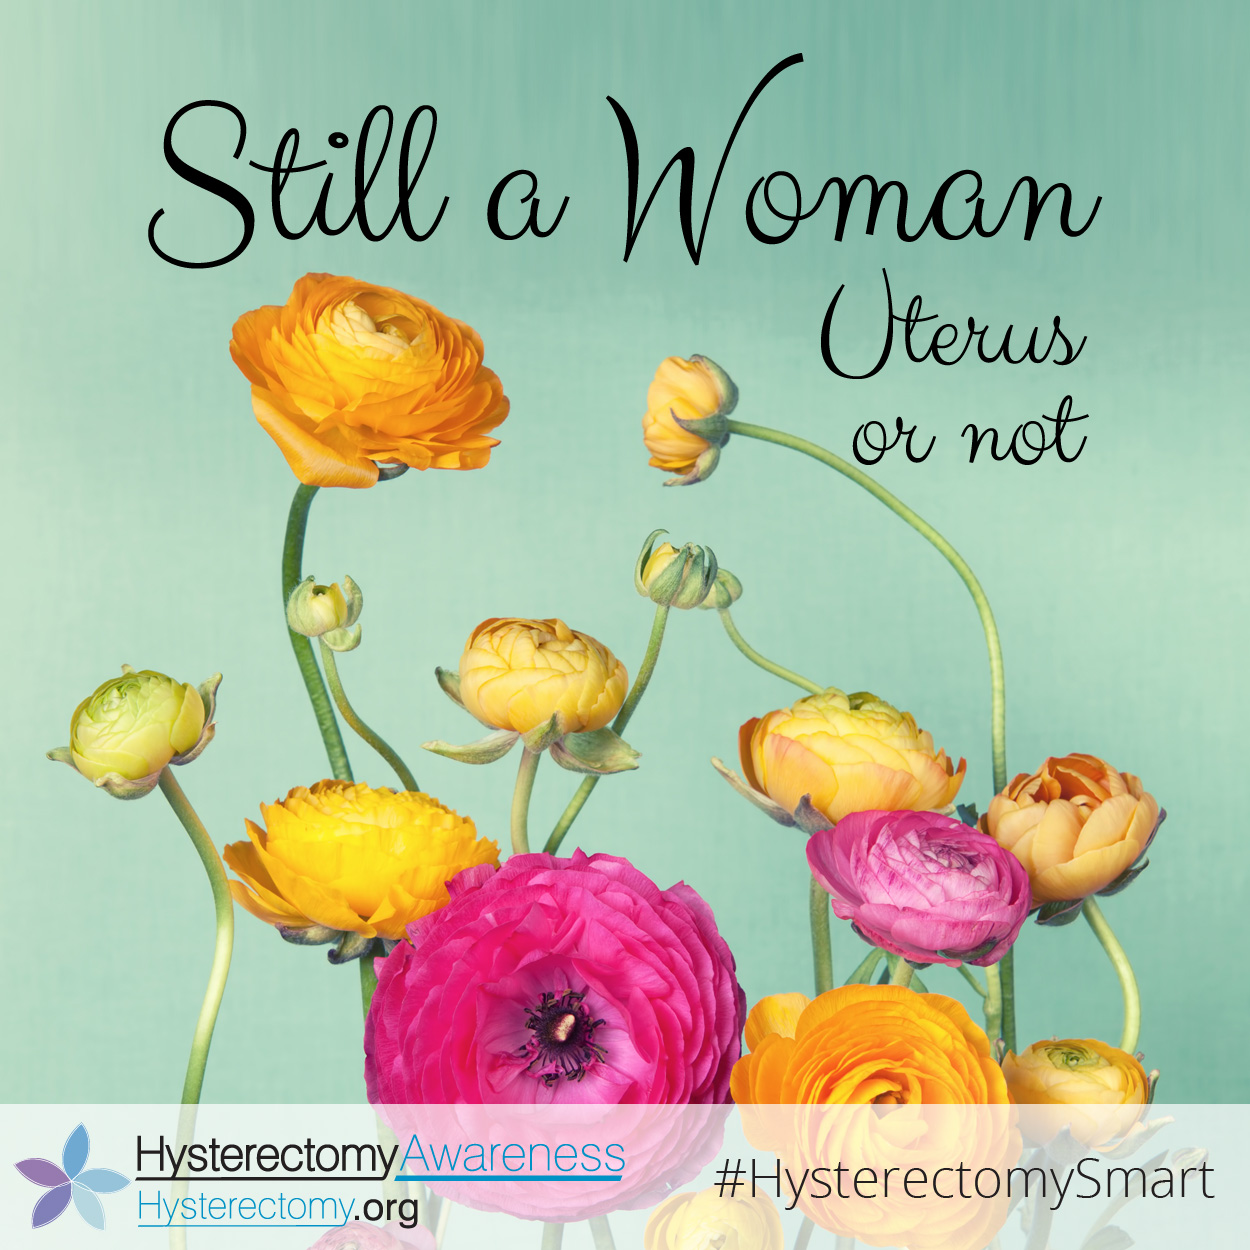 Still a Woman – Uterus or not #StillaWoman #HysterectomySmart